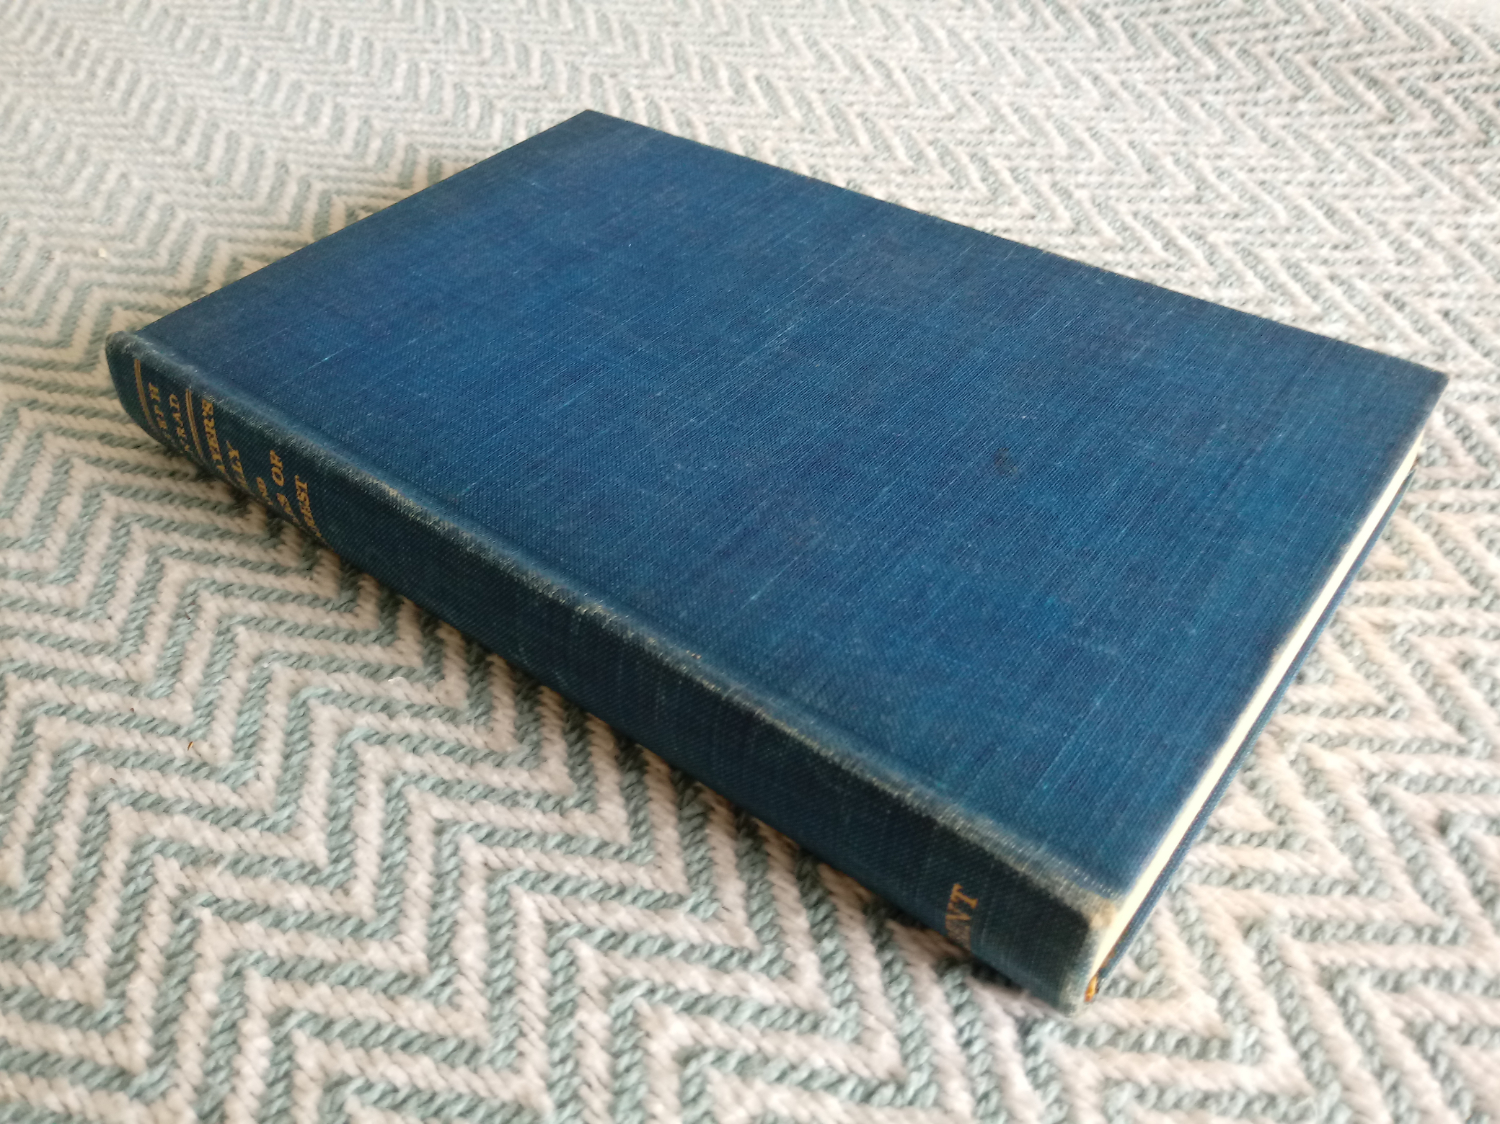 Almayer's Folly A Story of an Eastern River and Tales Of Unrest by Joseph Conrad Hardback book 204